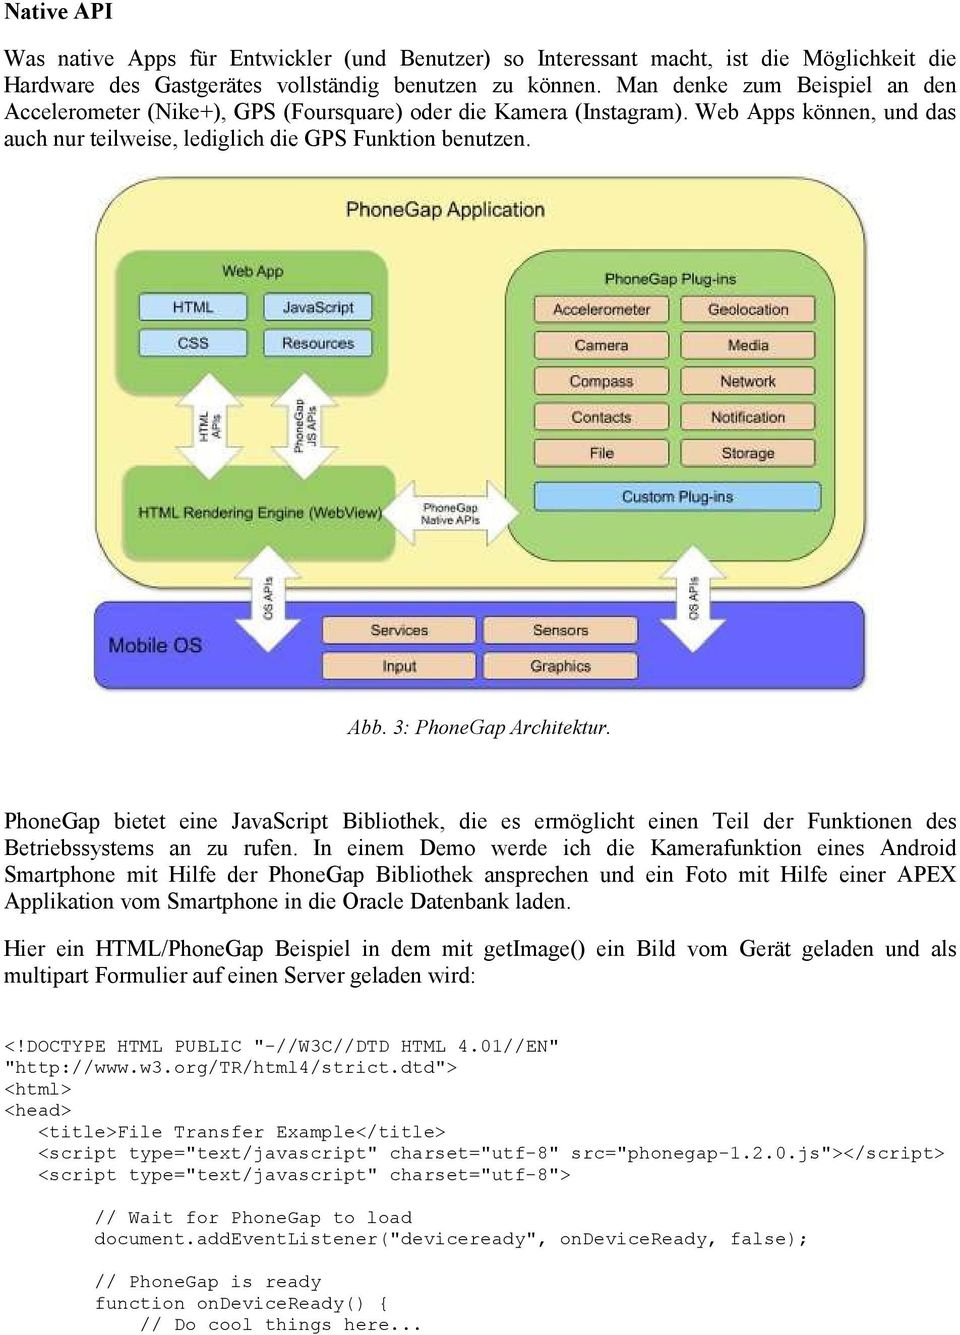 3: PhoneGap Architektur. PhoneGap bietet eine JavaScript Bibliothek, die es ermöglicht einen Teil der Funktionen des Betriebssystems an zu rufen.